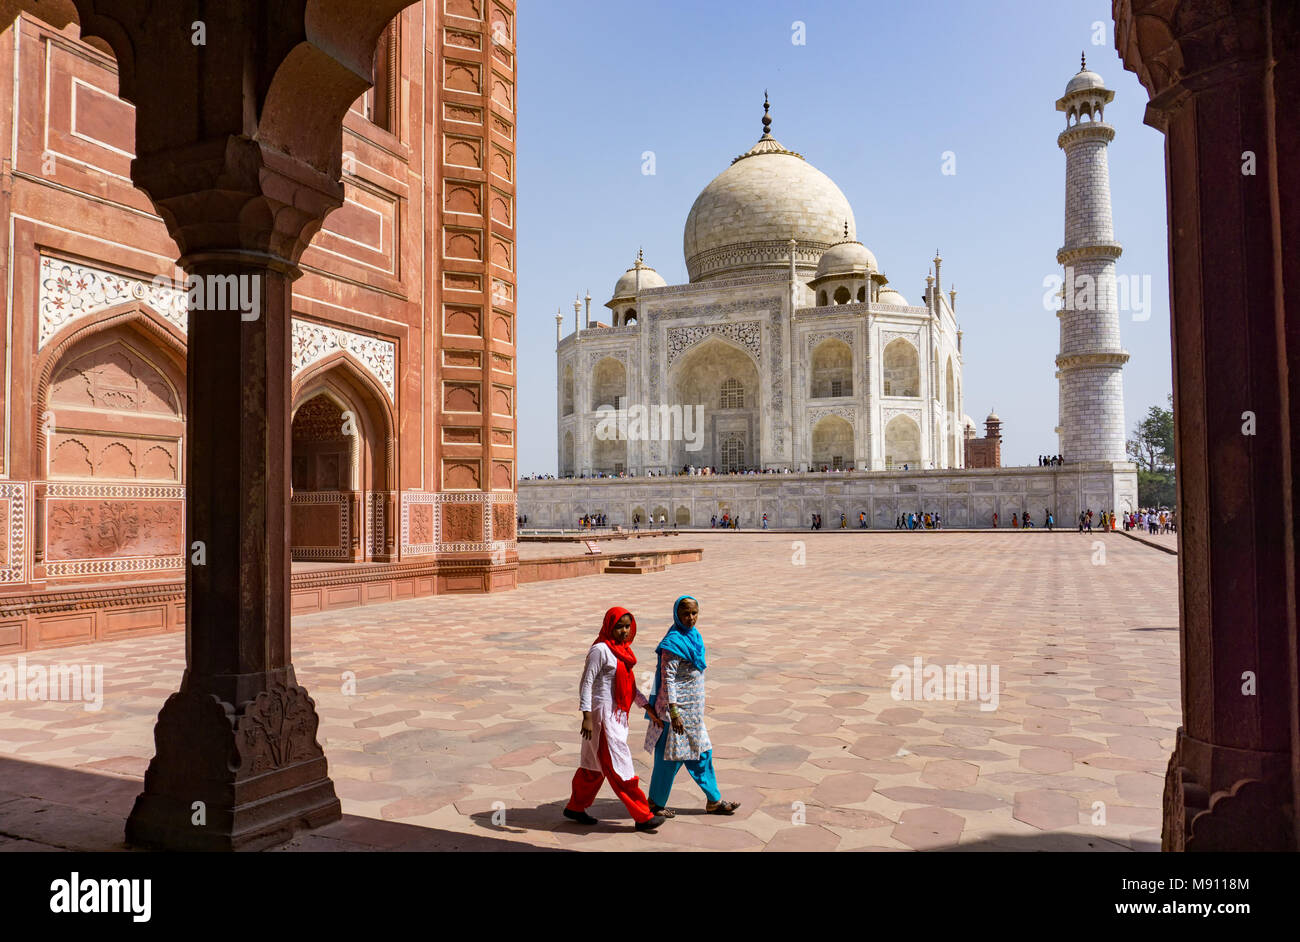 Agra, India - March 03, 2018: Two Indian women at Taj Mahal. The Taj Mahal is an ivory-white marble mausoleum and most popular landmark in India. - Stock Image